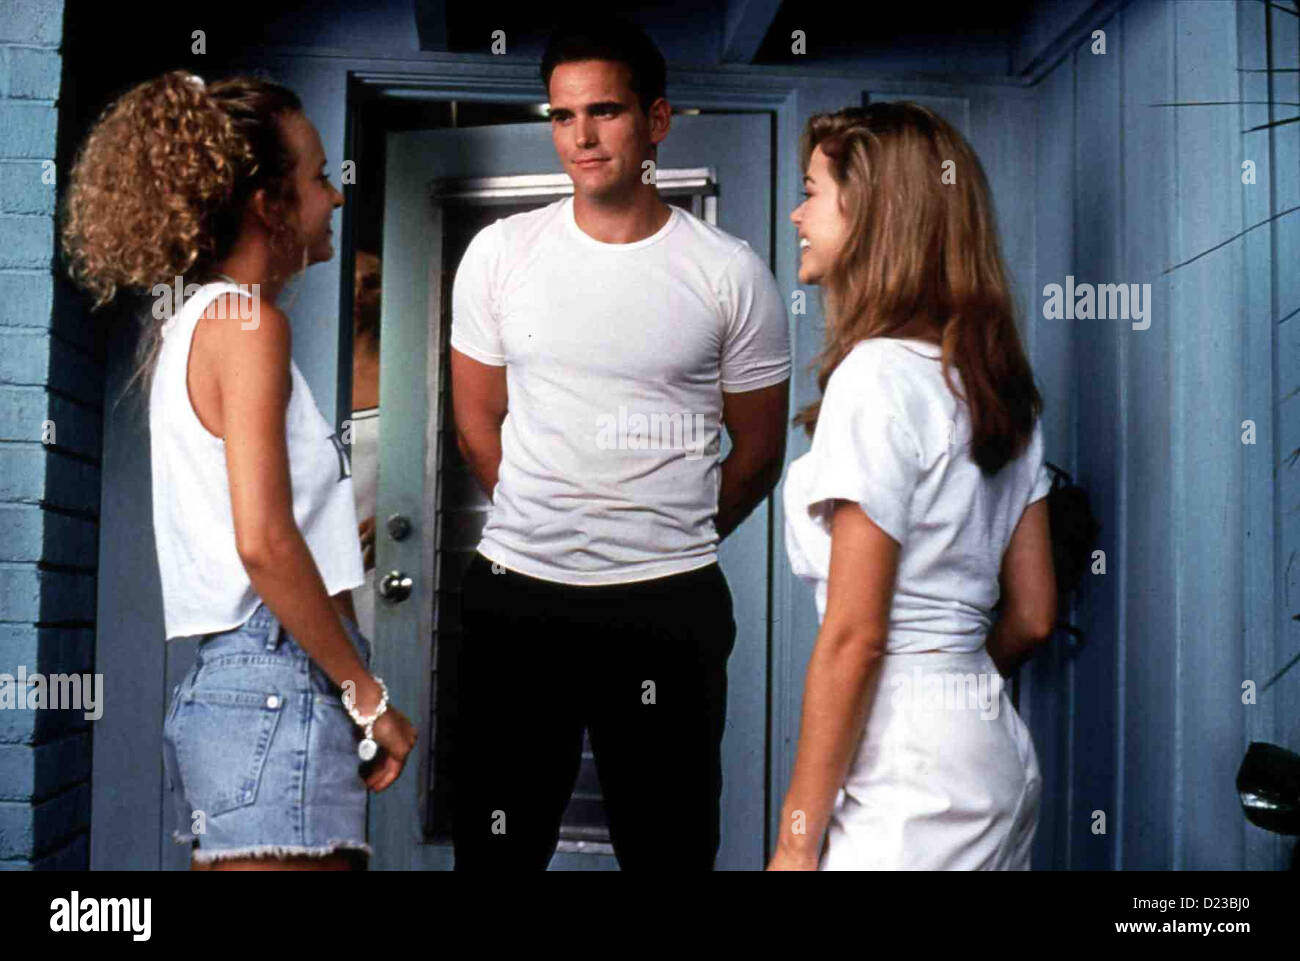 Wild Things  Wild Things  ?, Sam Lombardo (Matt Dillon), Kelly Van Ryan (Denise Richards) *** Local Caption *** - Stock Image